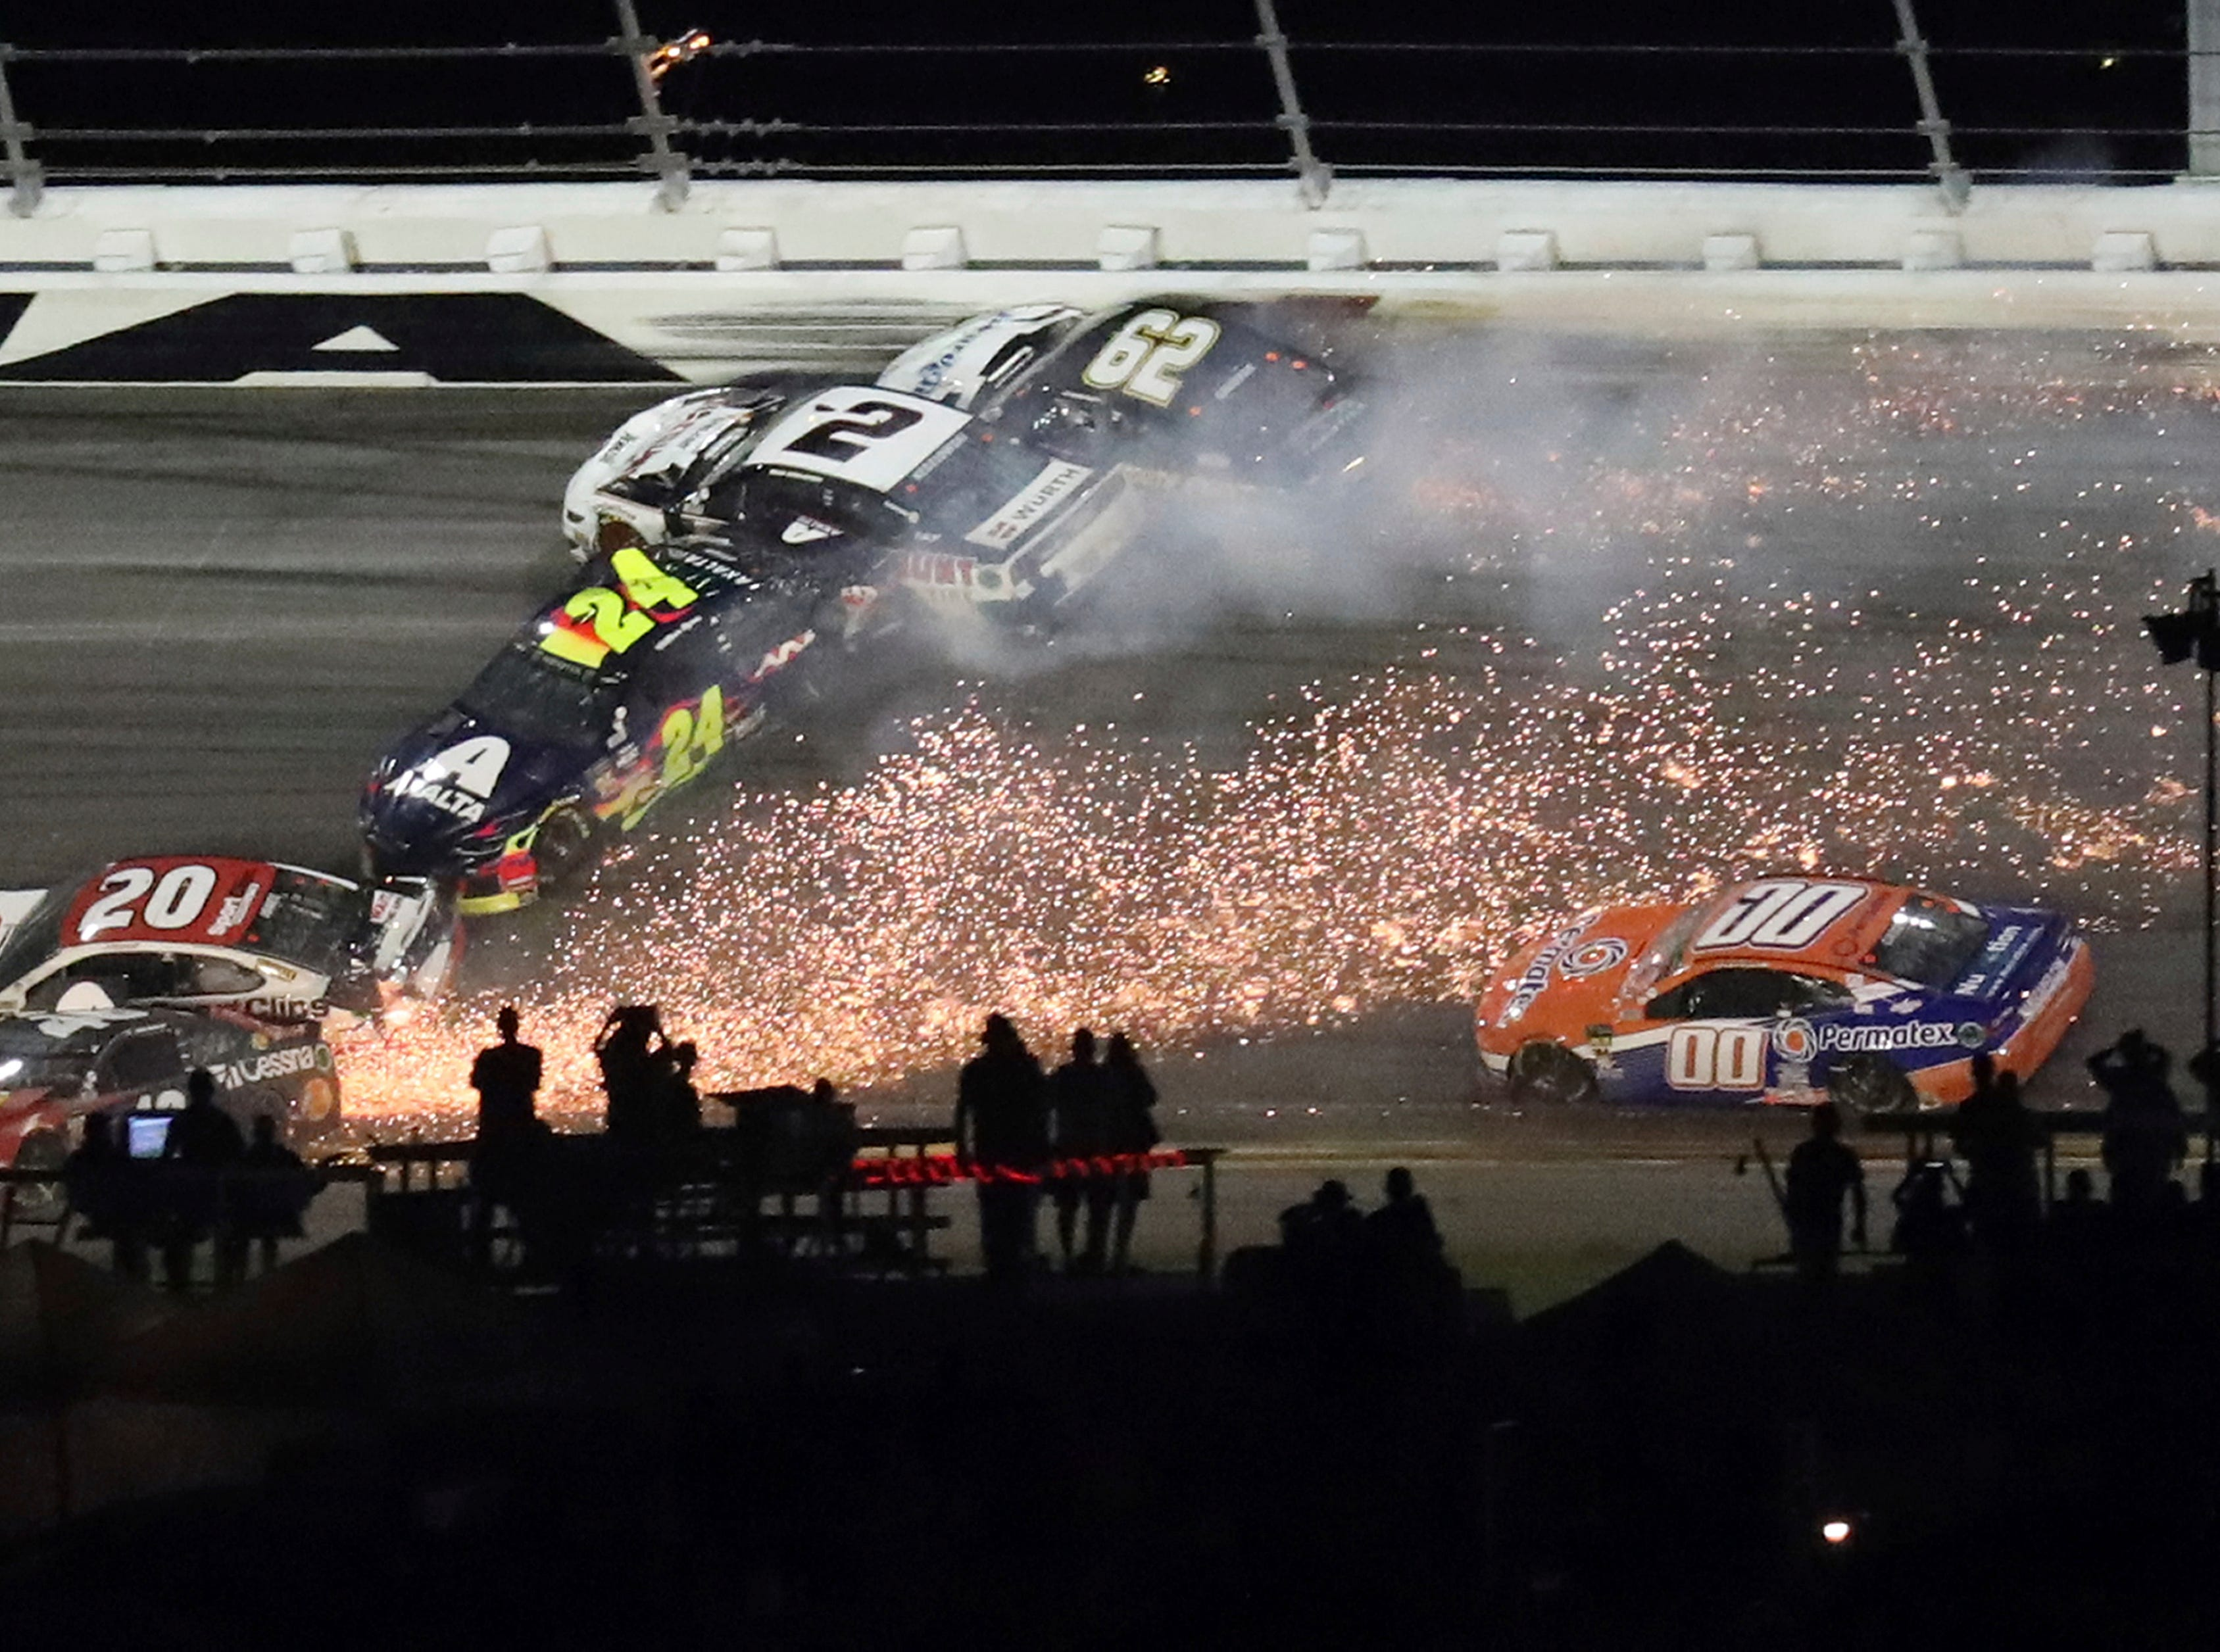 Erik Jones (20), William Byron (24), Brad Keselowski (2), and Brendan Gaughan (62) crash during a NASCAR Daytona 500 auto race.